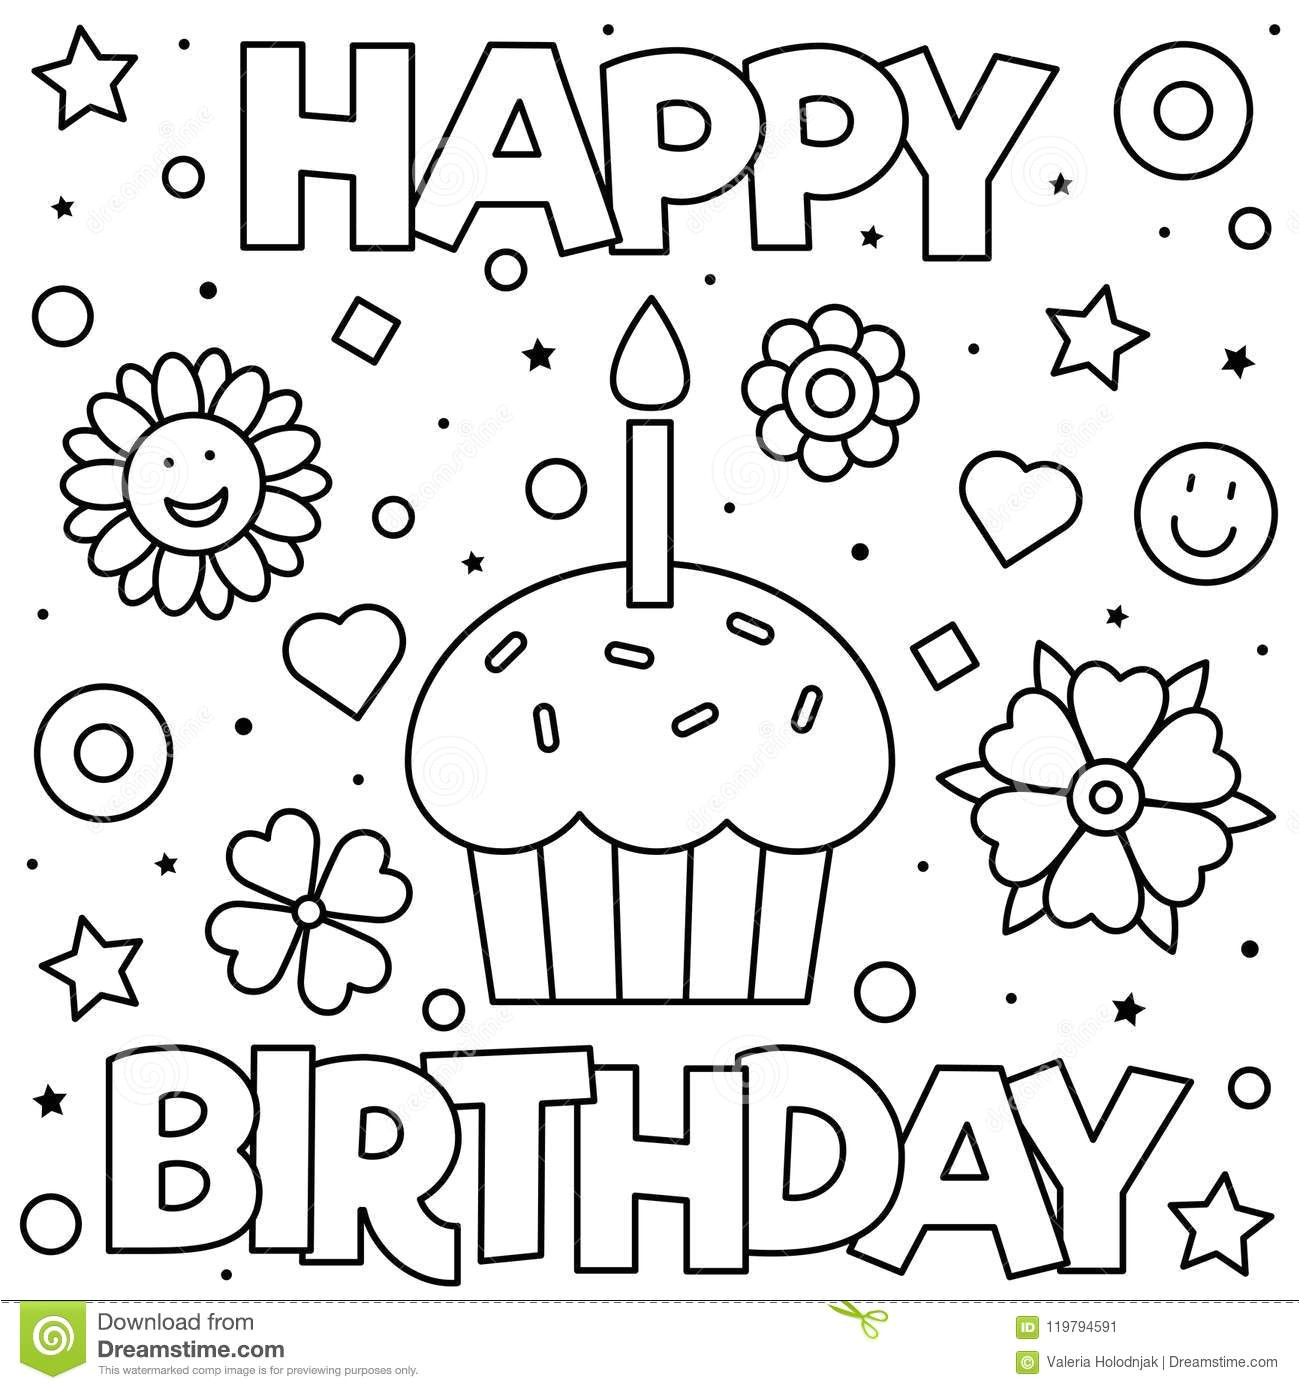 happy birthday coloring page black white vector illustration coloring page vector illustration 119794591 jpg